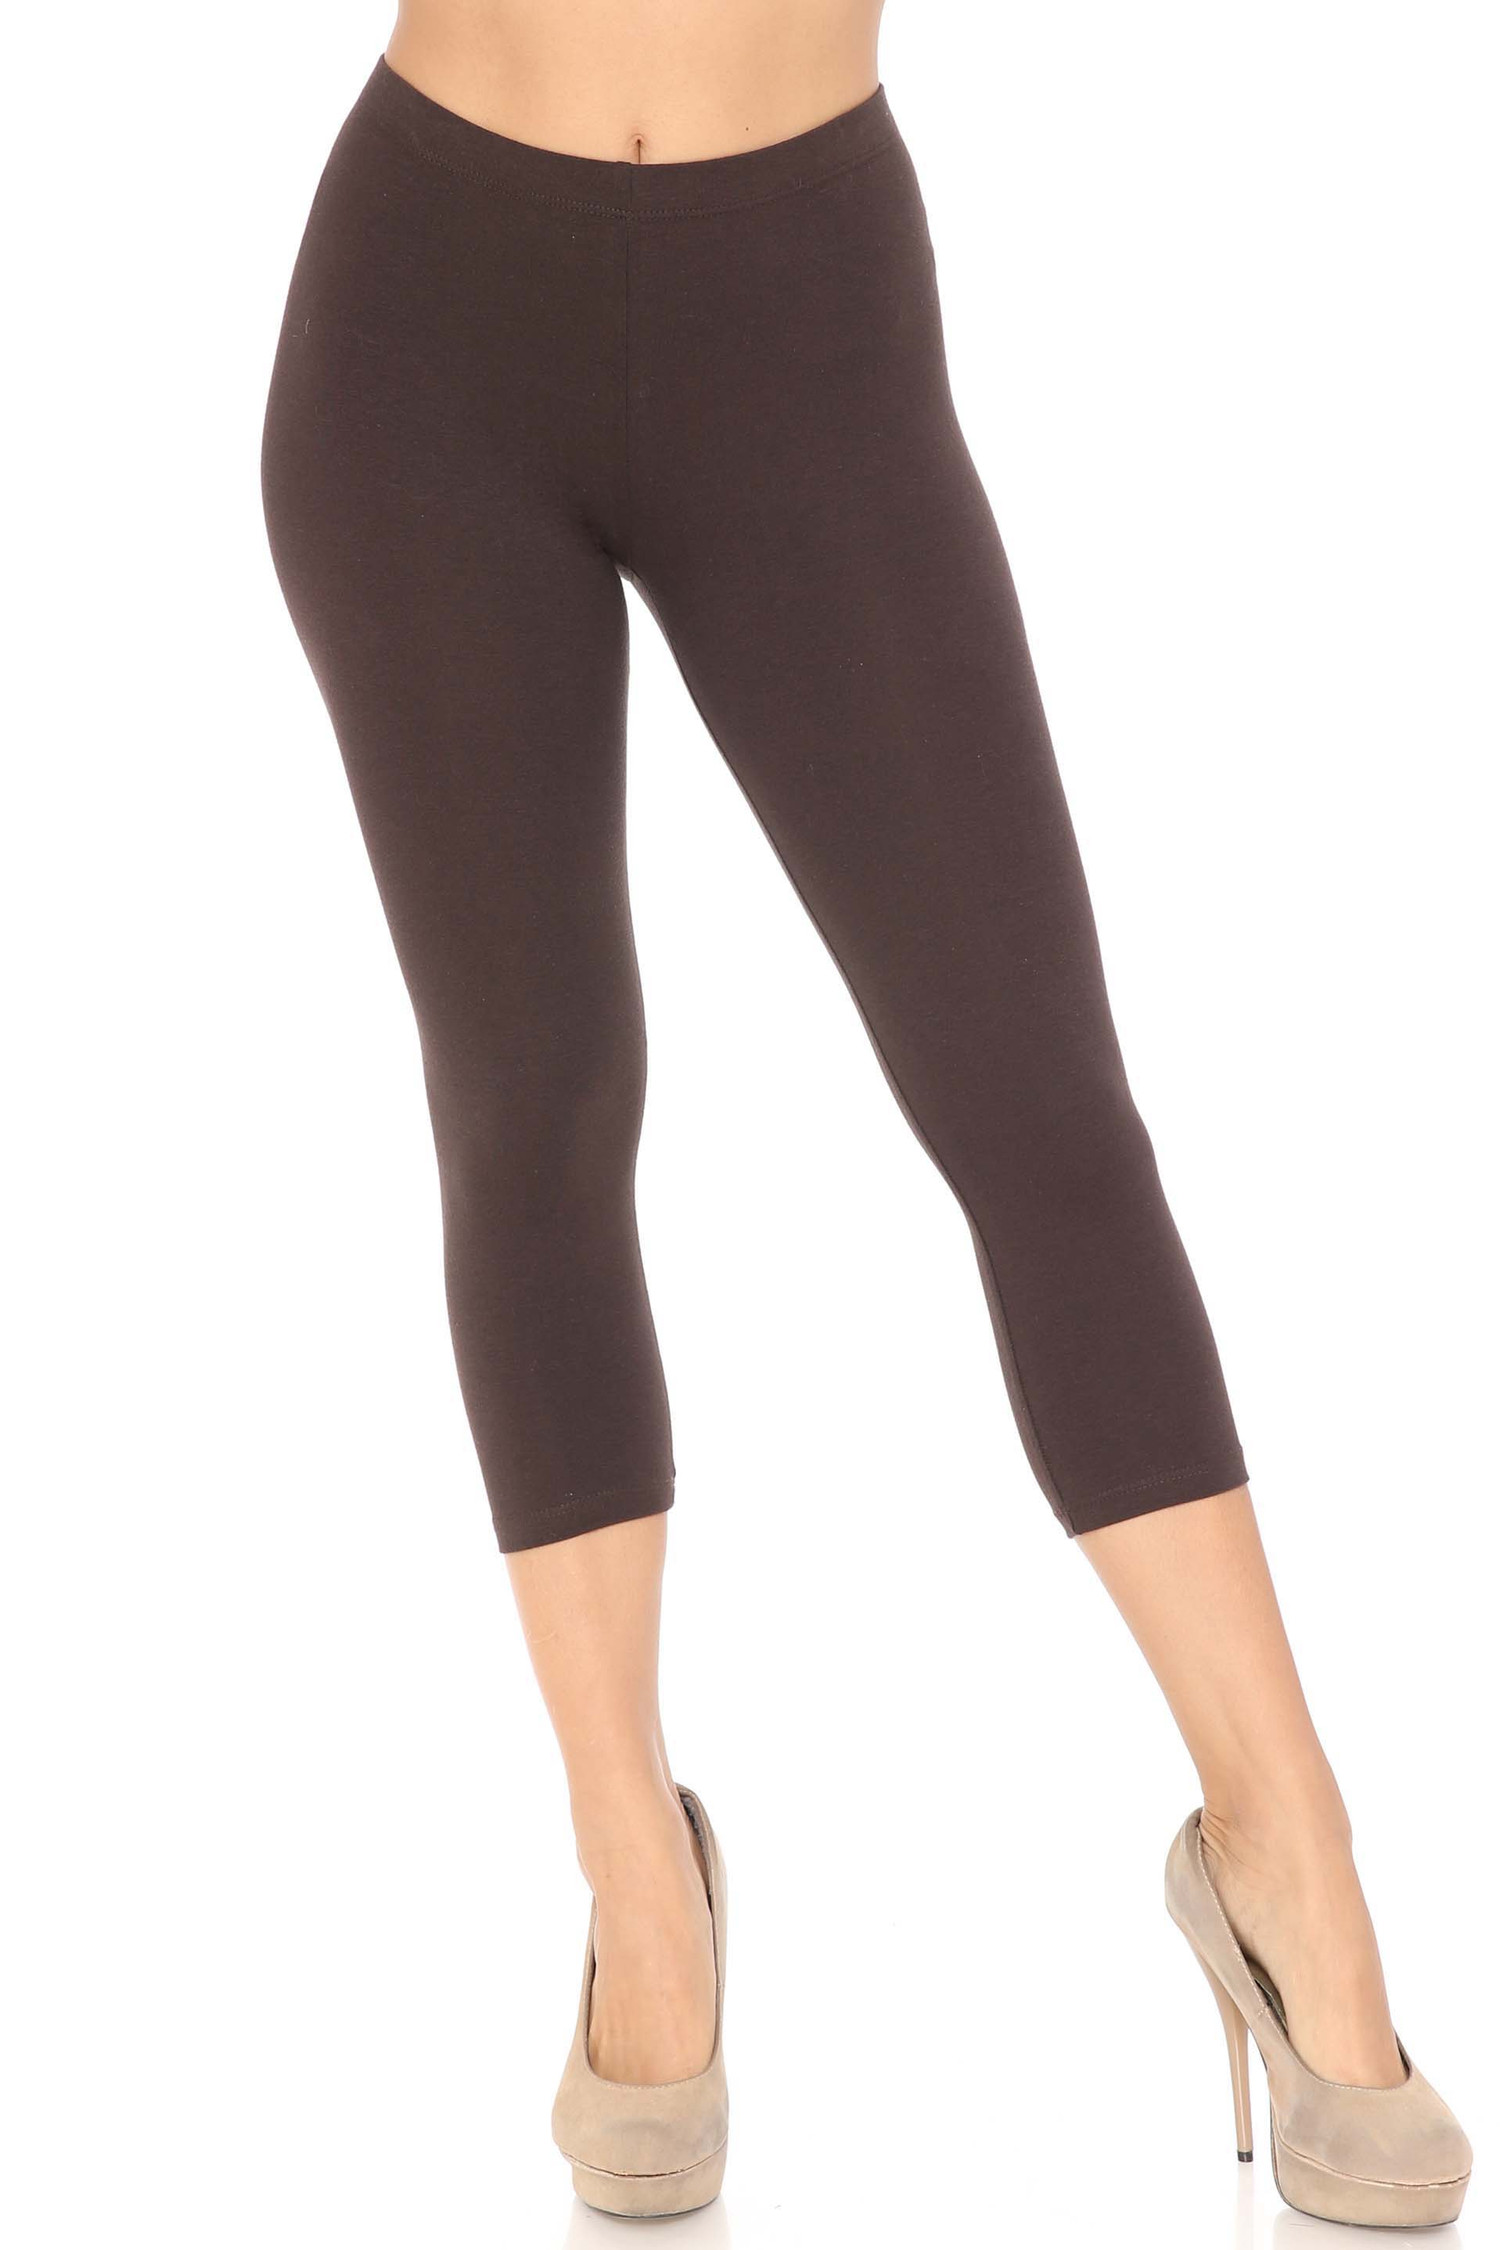 Front view of brown USA Cotton Capri Length Leggings